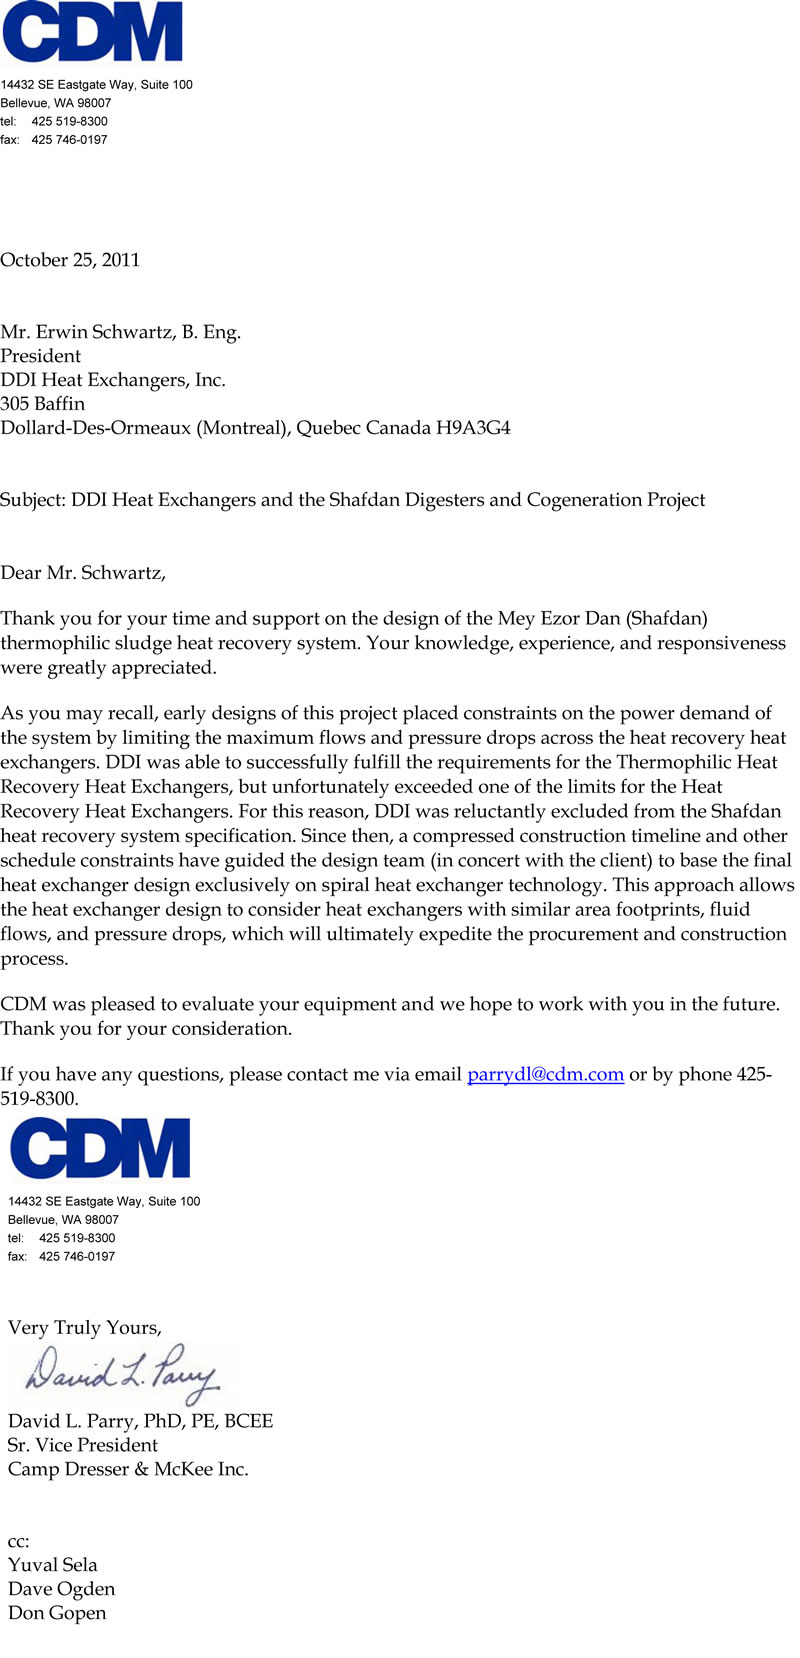 R2- Letter of reference from CDM on Shafdan project1